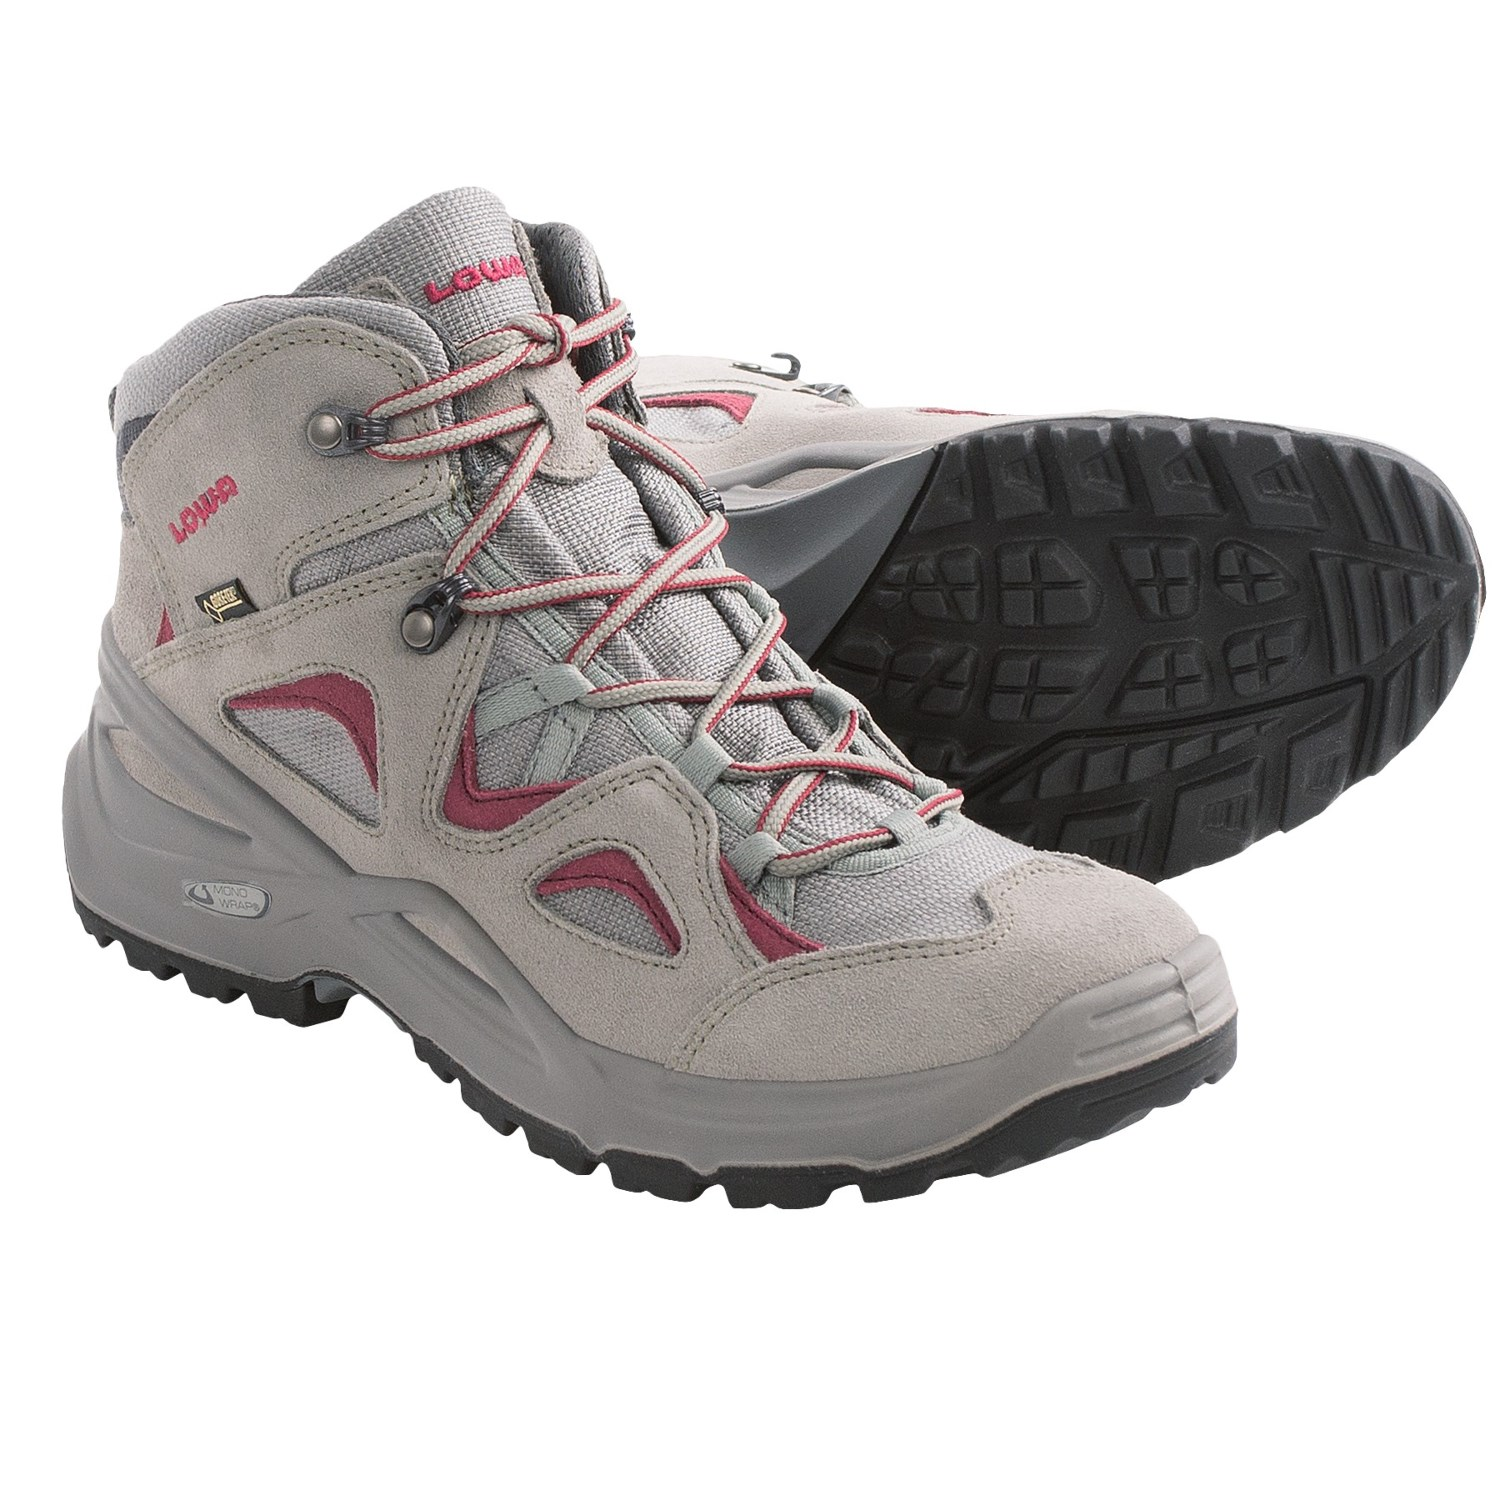 lowa bora tex 174 qc hiking boots waterproof for in grey magenta